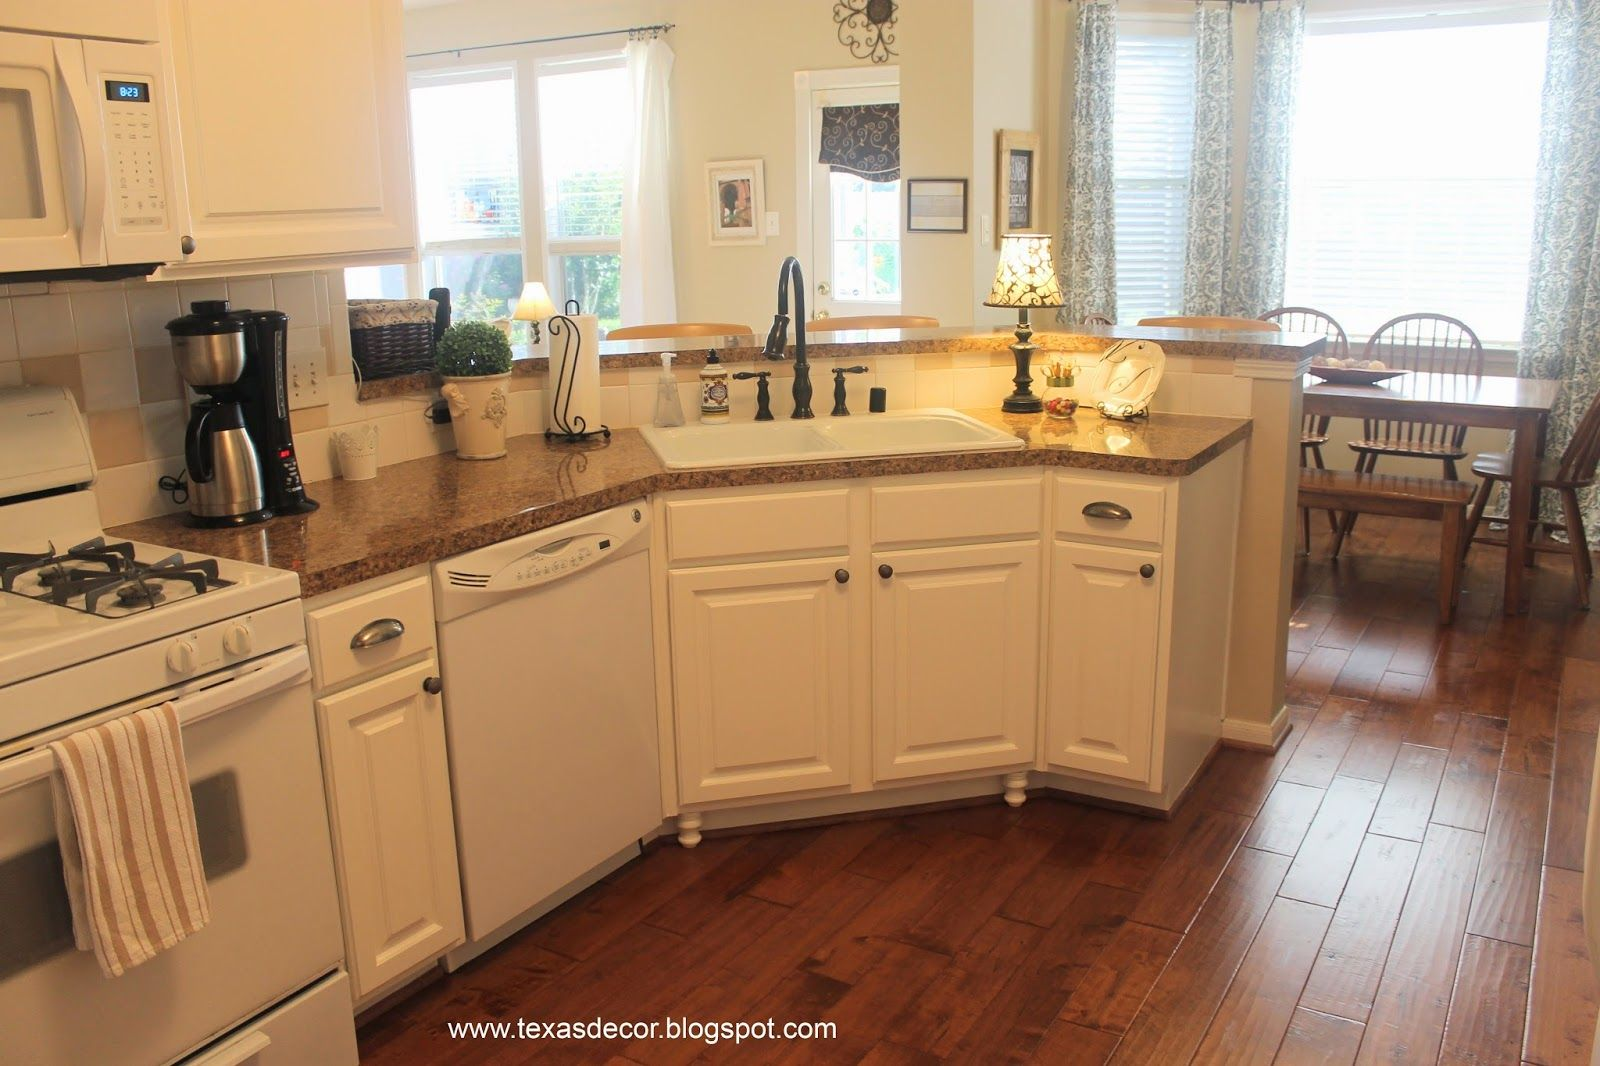 great tutorial on painting kitchen cupboards